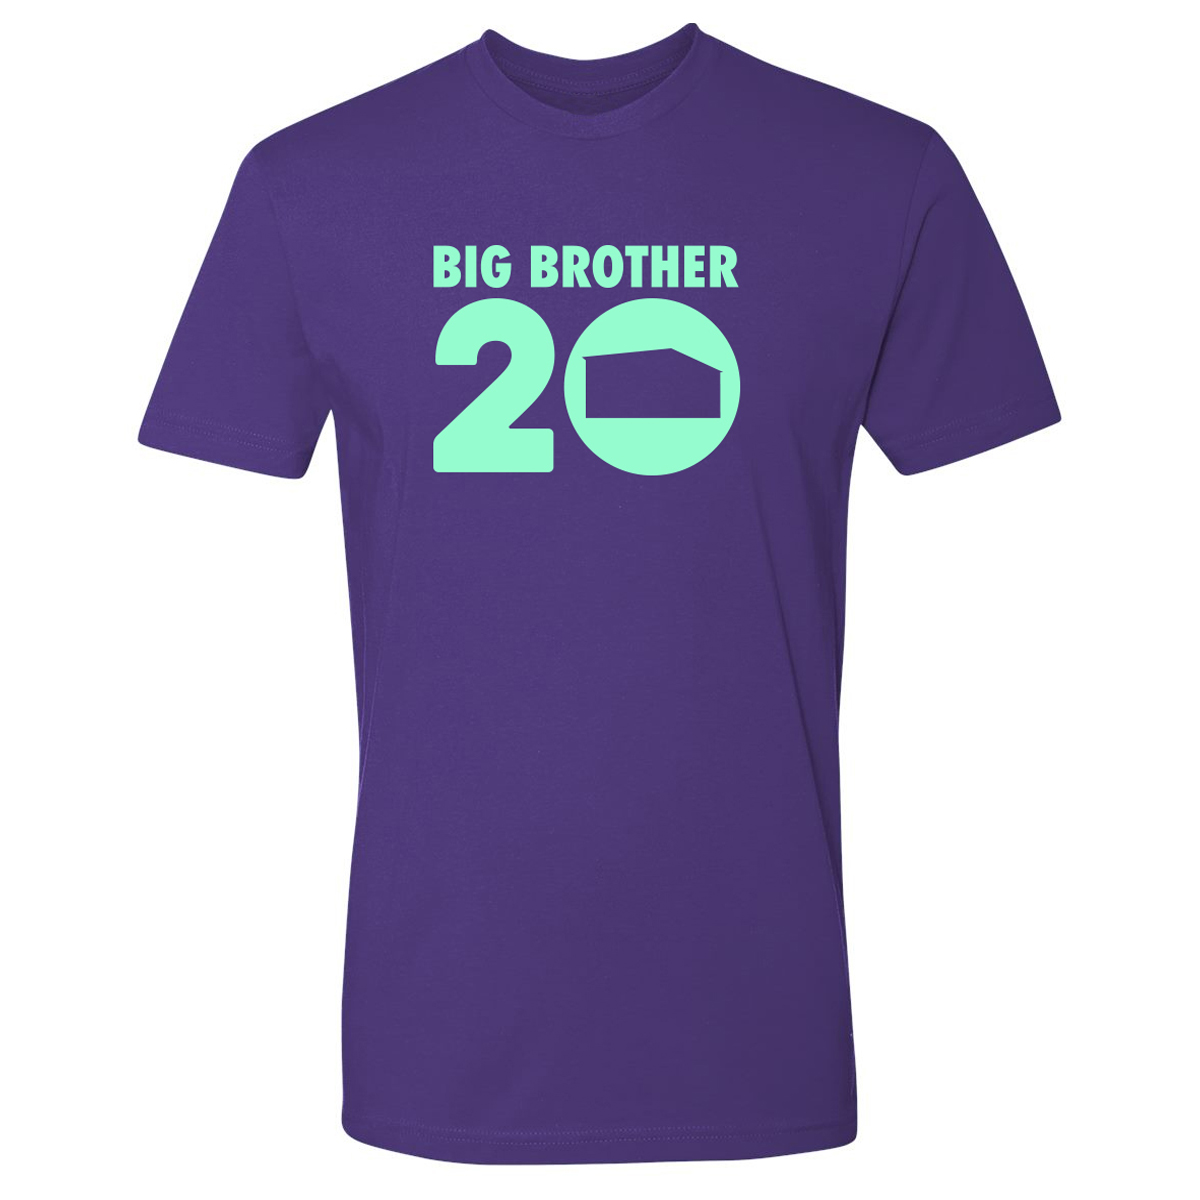 Big Brother 20 Logo T-Shirt (Purple)